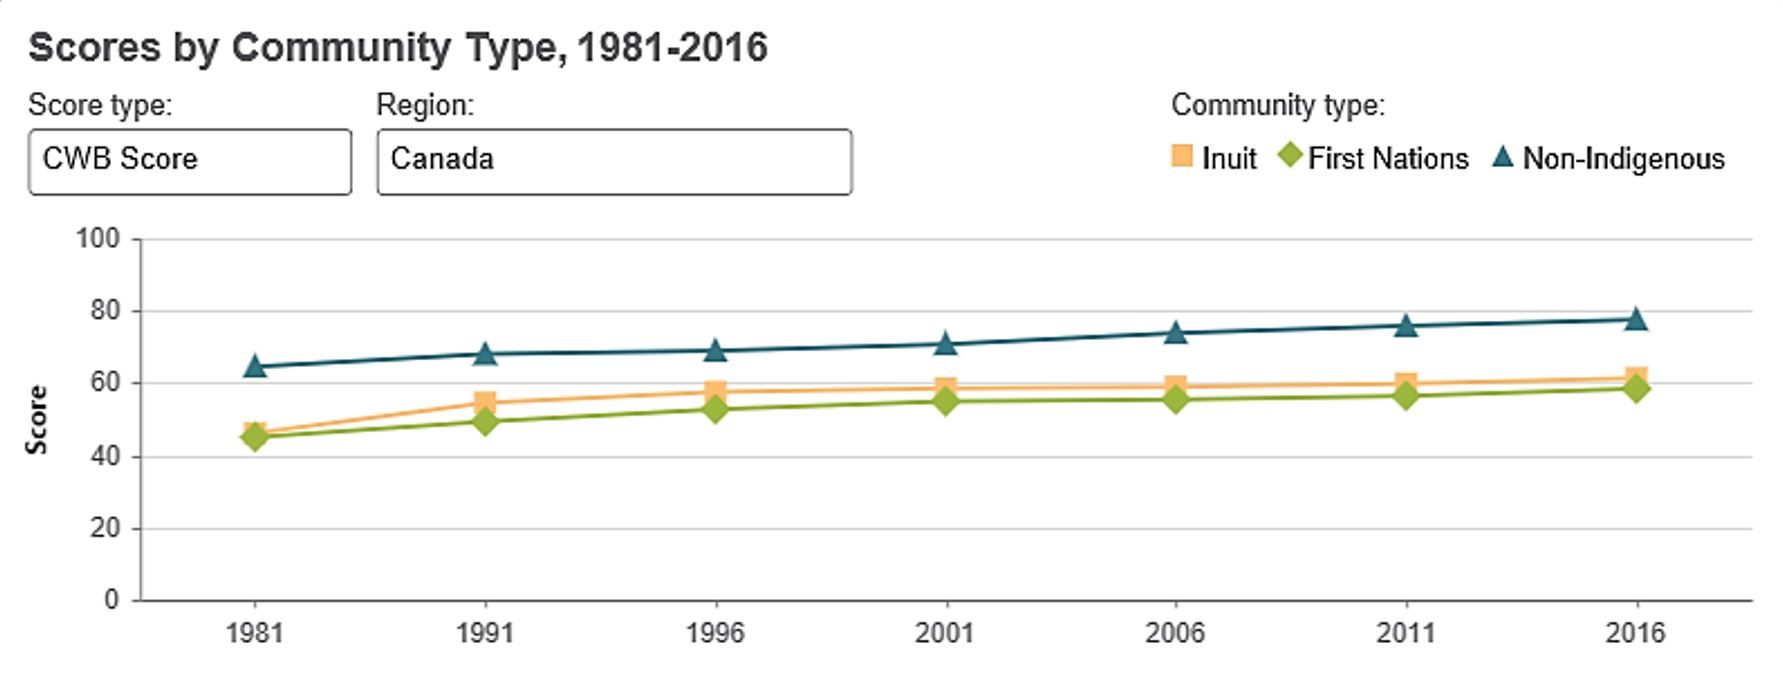 Scores by Community Type 1981-2016